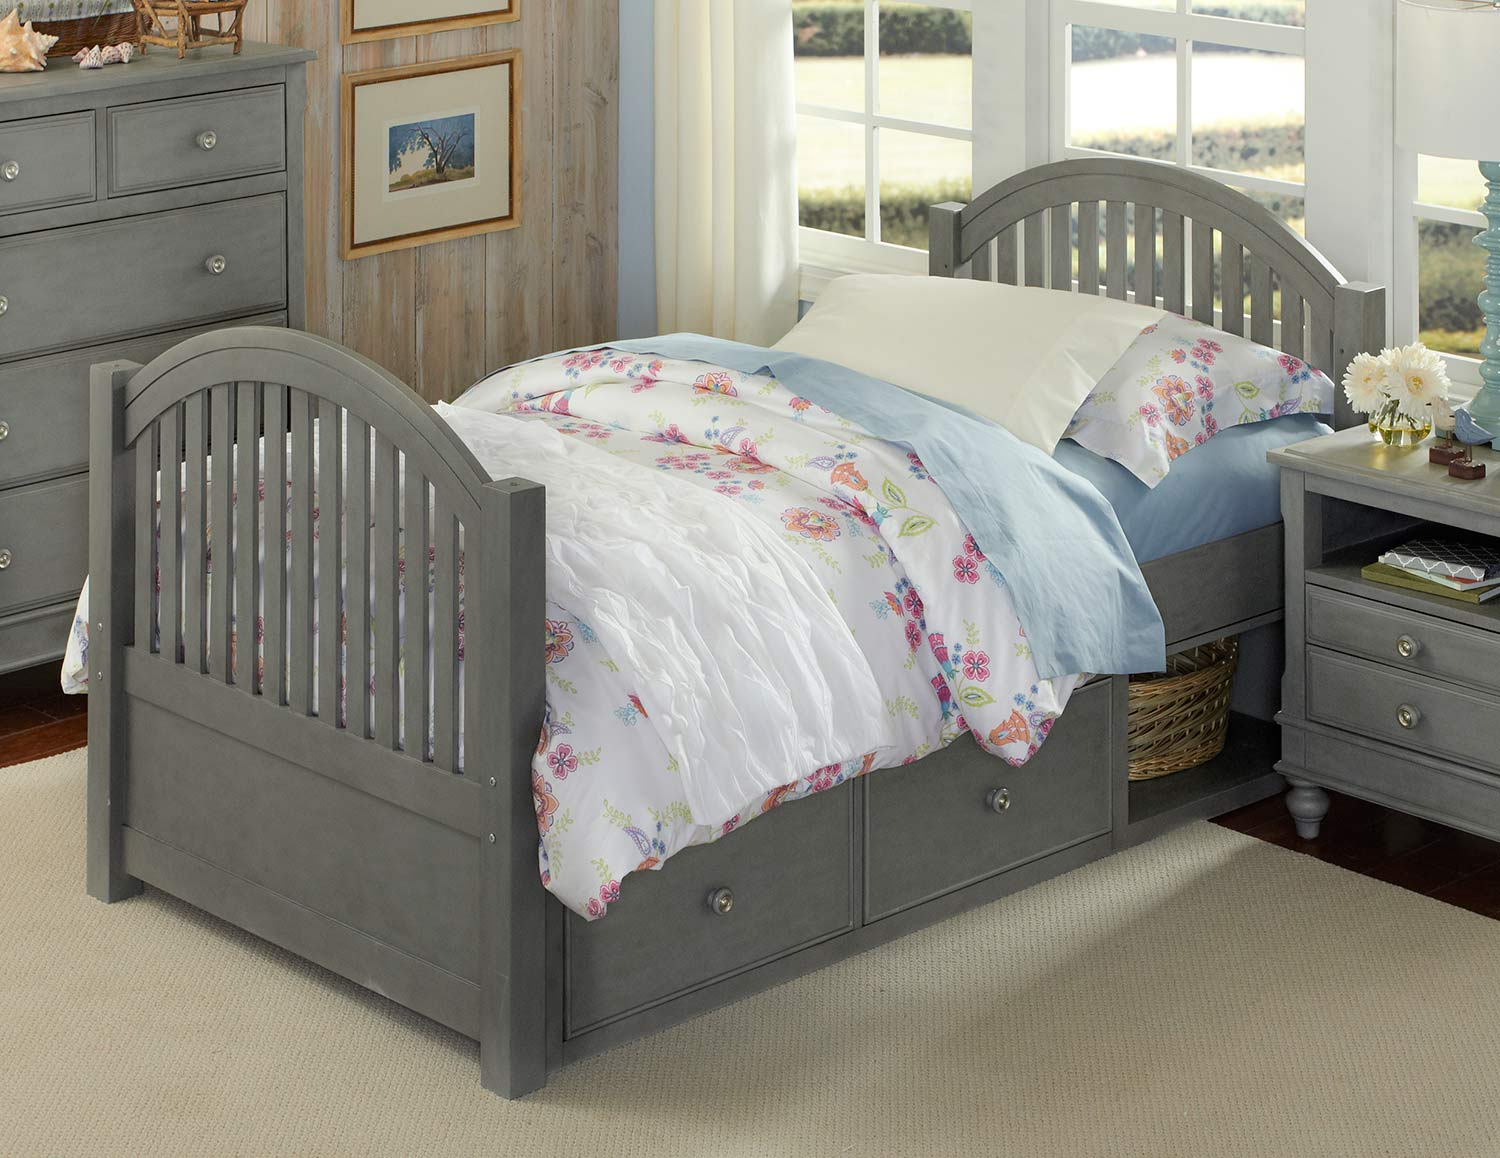 NE Kids Lake House Adrian Twin Bed With Storage - Stone